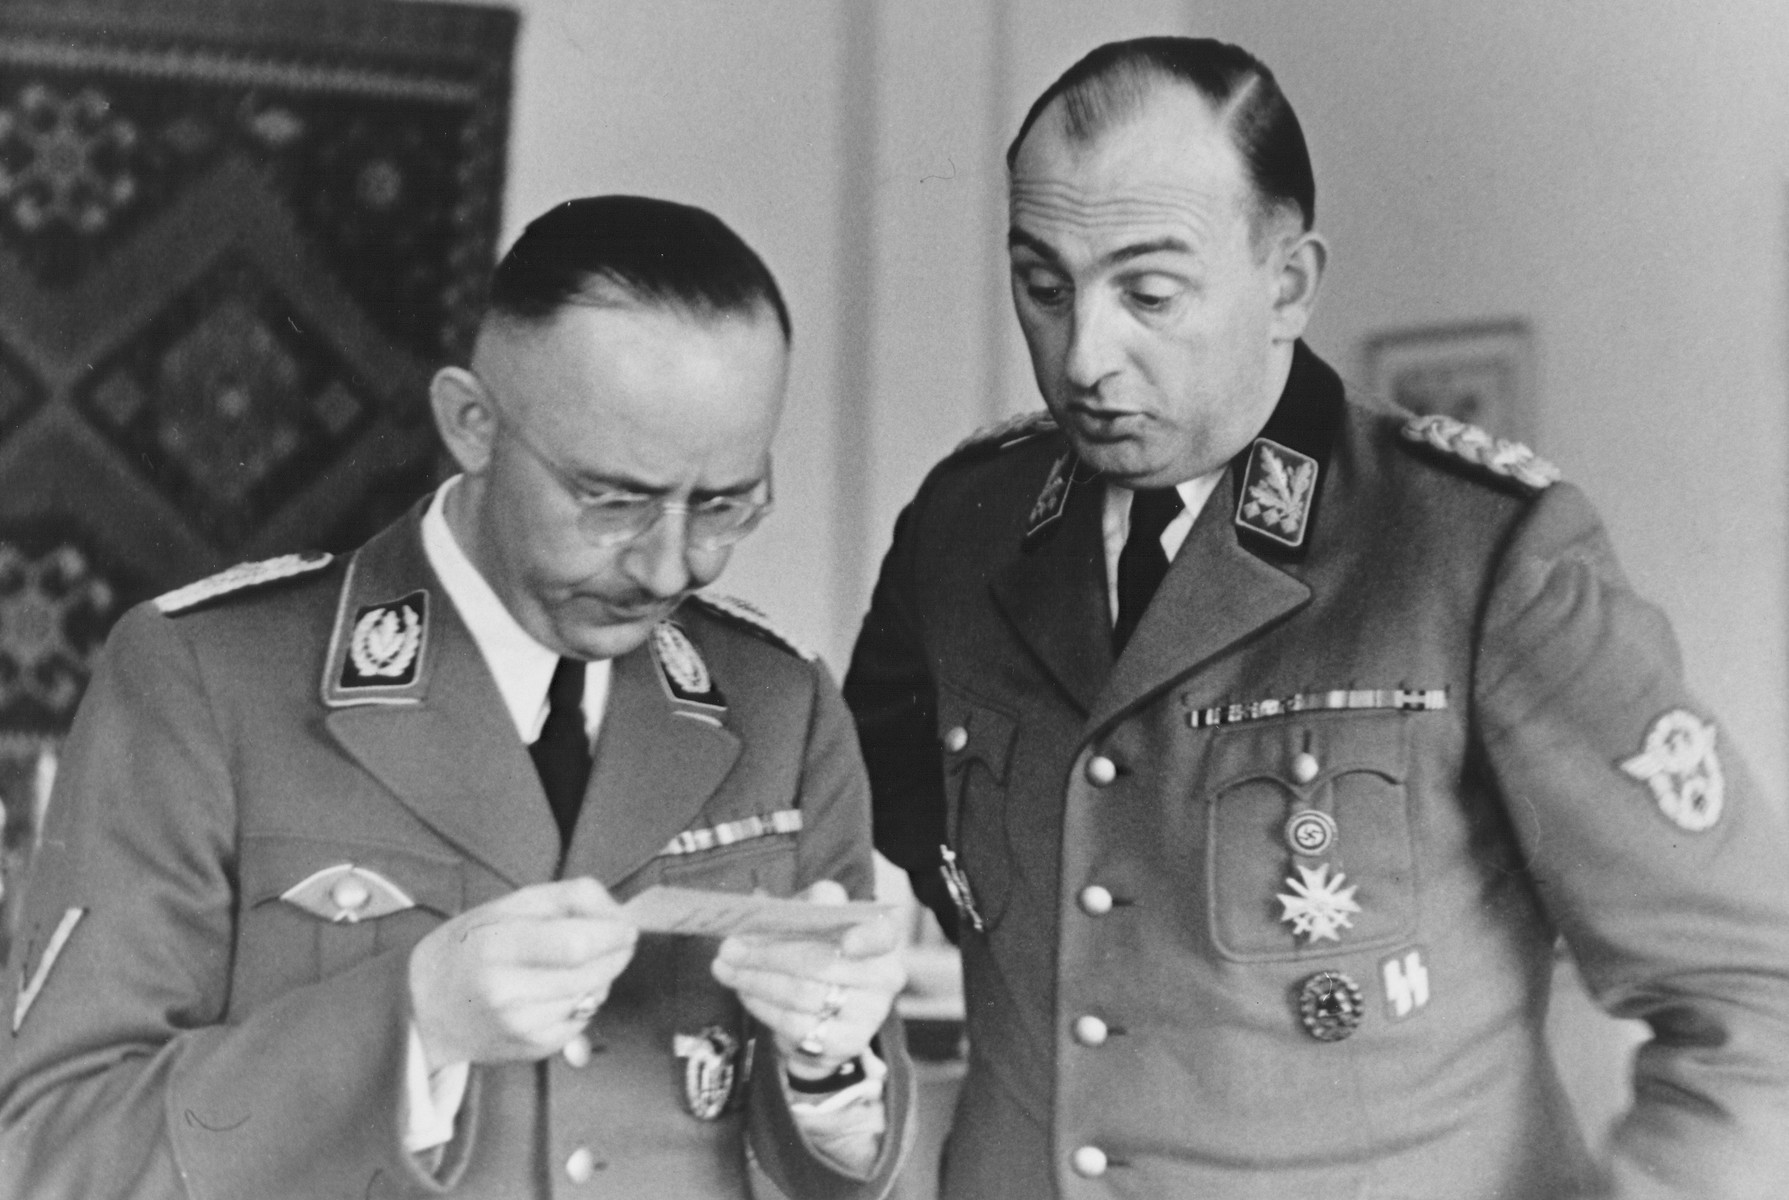 Reichsfuehrer-SS Heinrich Himmler looks at a photograph on his birthday with Chief of the Order Police, Kurt Daluege at SS headquarters in Hegewald bei Zhitomir, Ukraine.